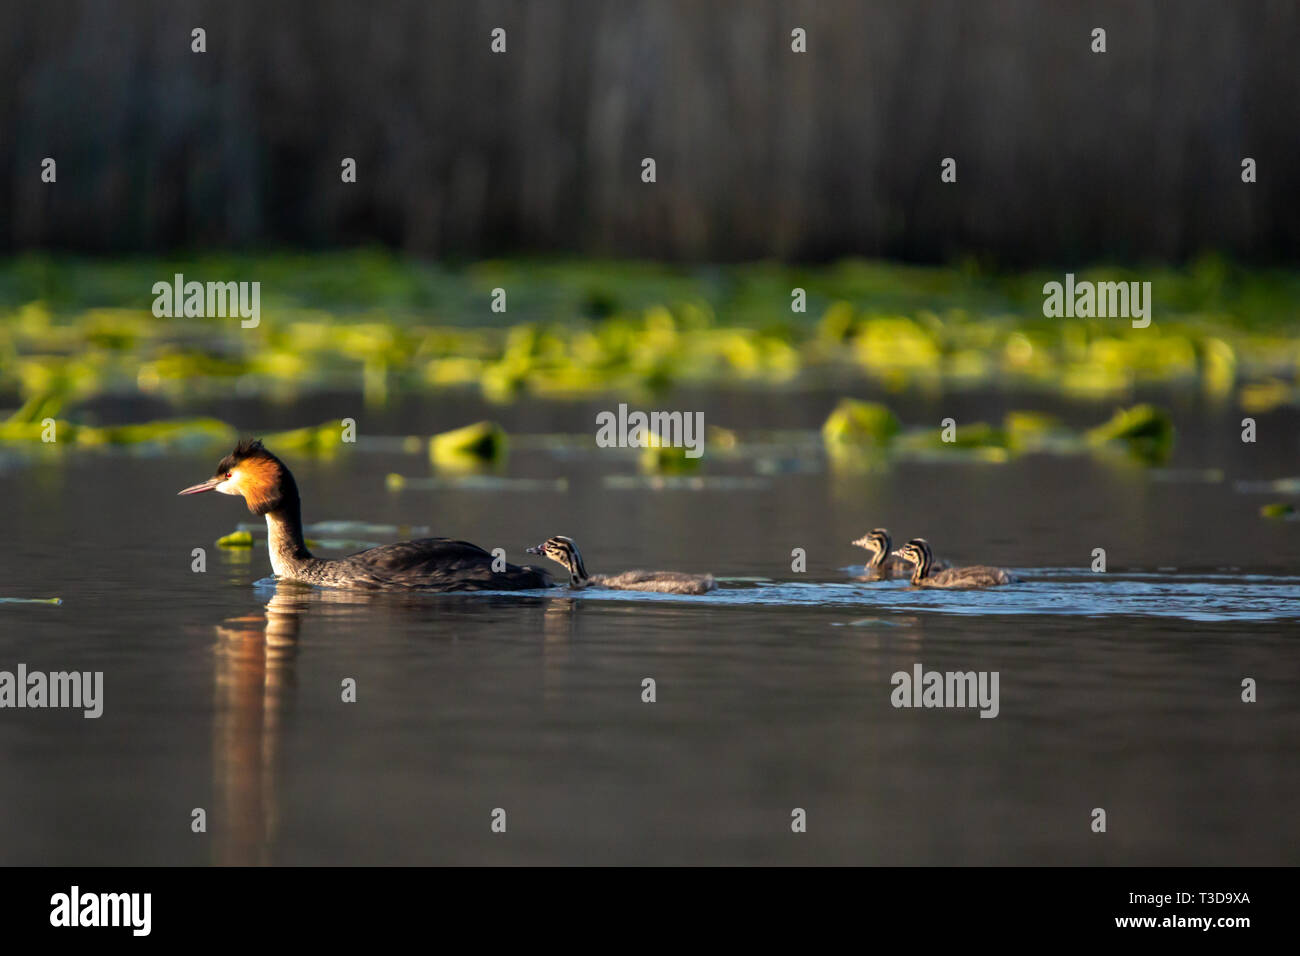 Colour wildlife portrait photograph of adult Great crested grebe (Podiceps cristatus) with three chicks following behind whilst swimming on water. Tak - Stock Image